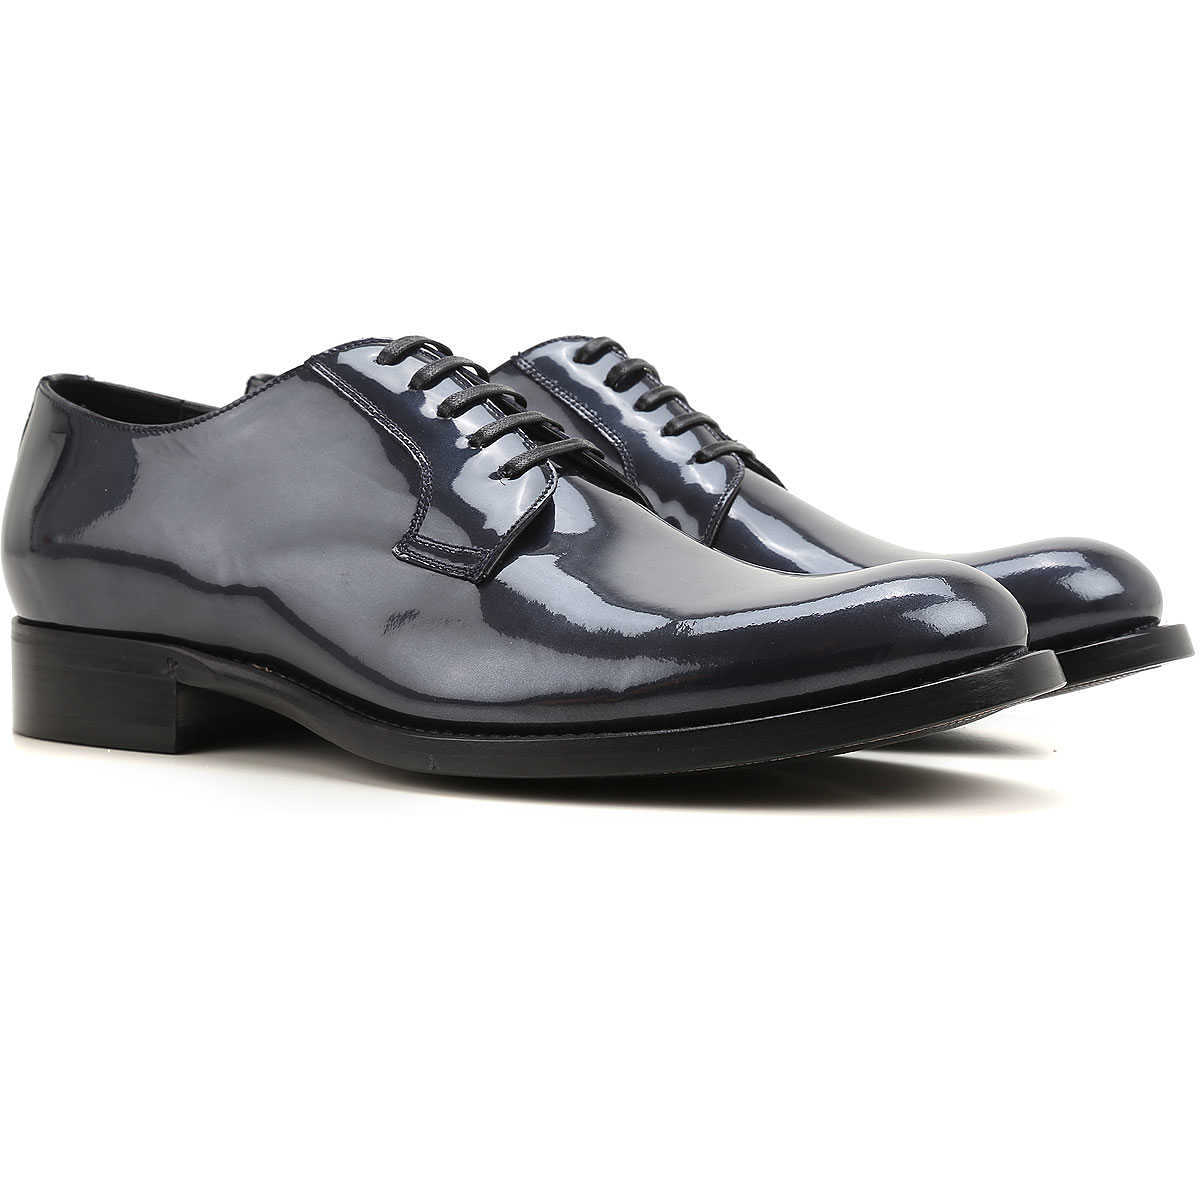 Dolce & Gabbana Lace Up Shoes for Men Oxfords 6.75 8 9 Derbies and Brogues On Sale in Outlet UK - GOOFASH